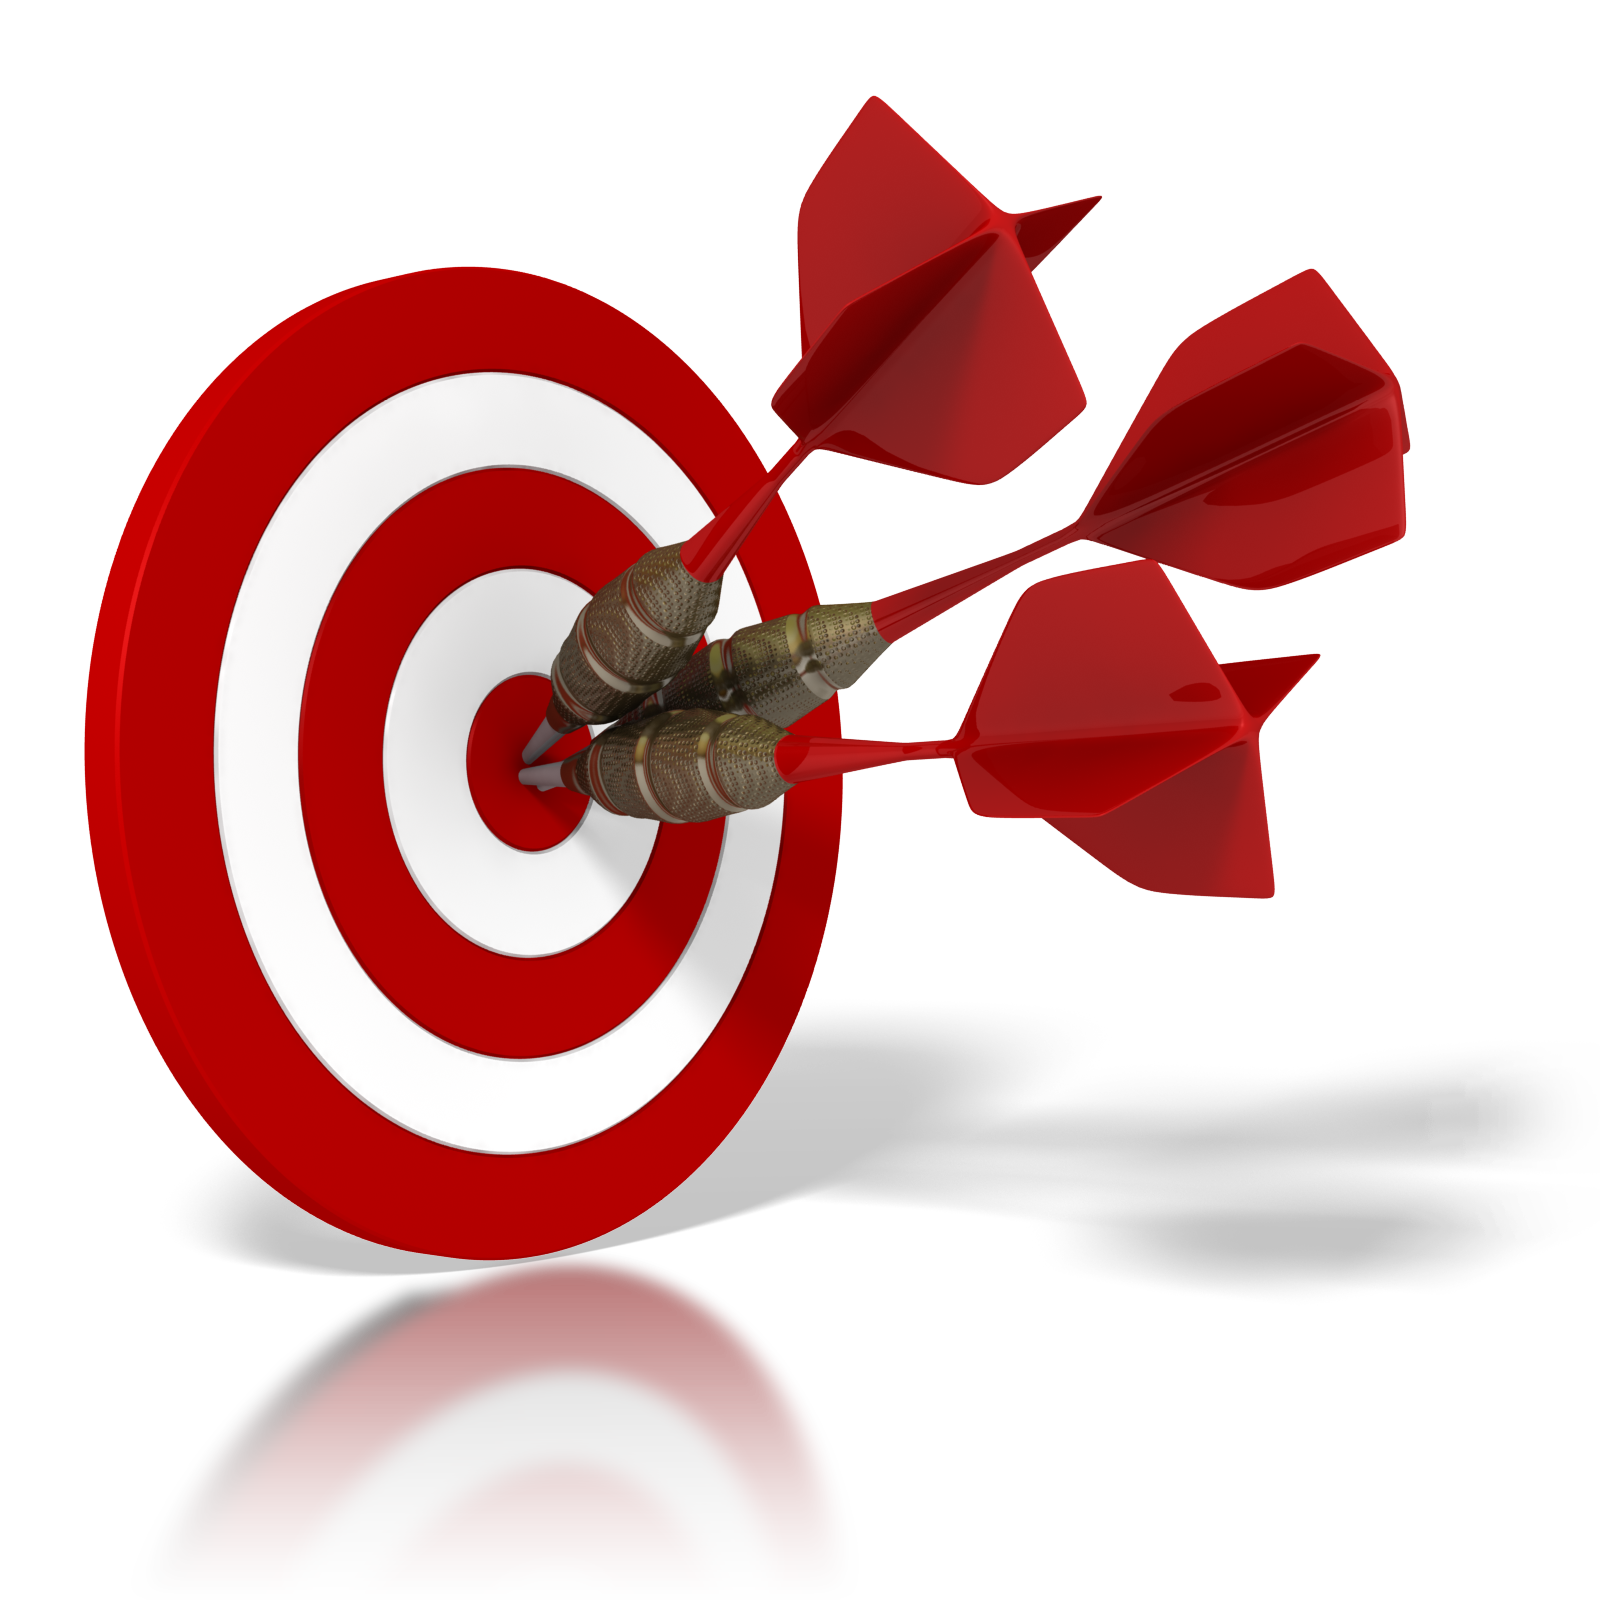 vector freeuse Trger top with target. Bullseye clipart mod